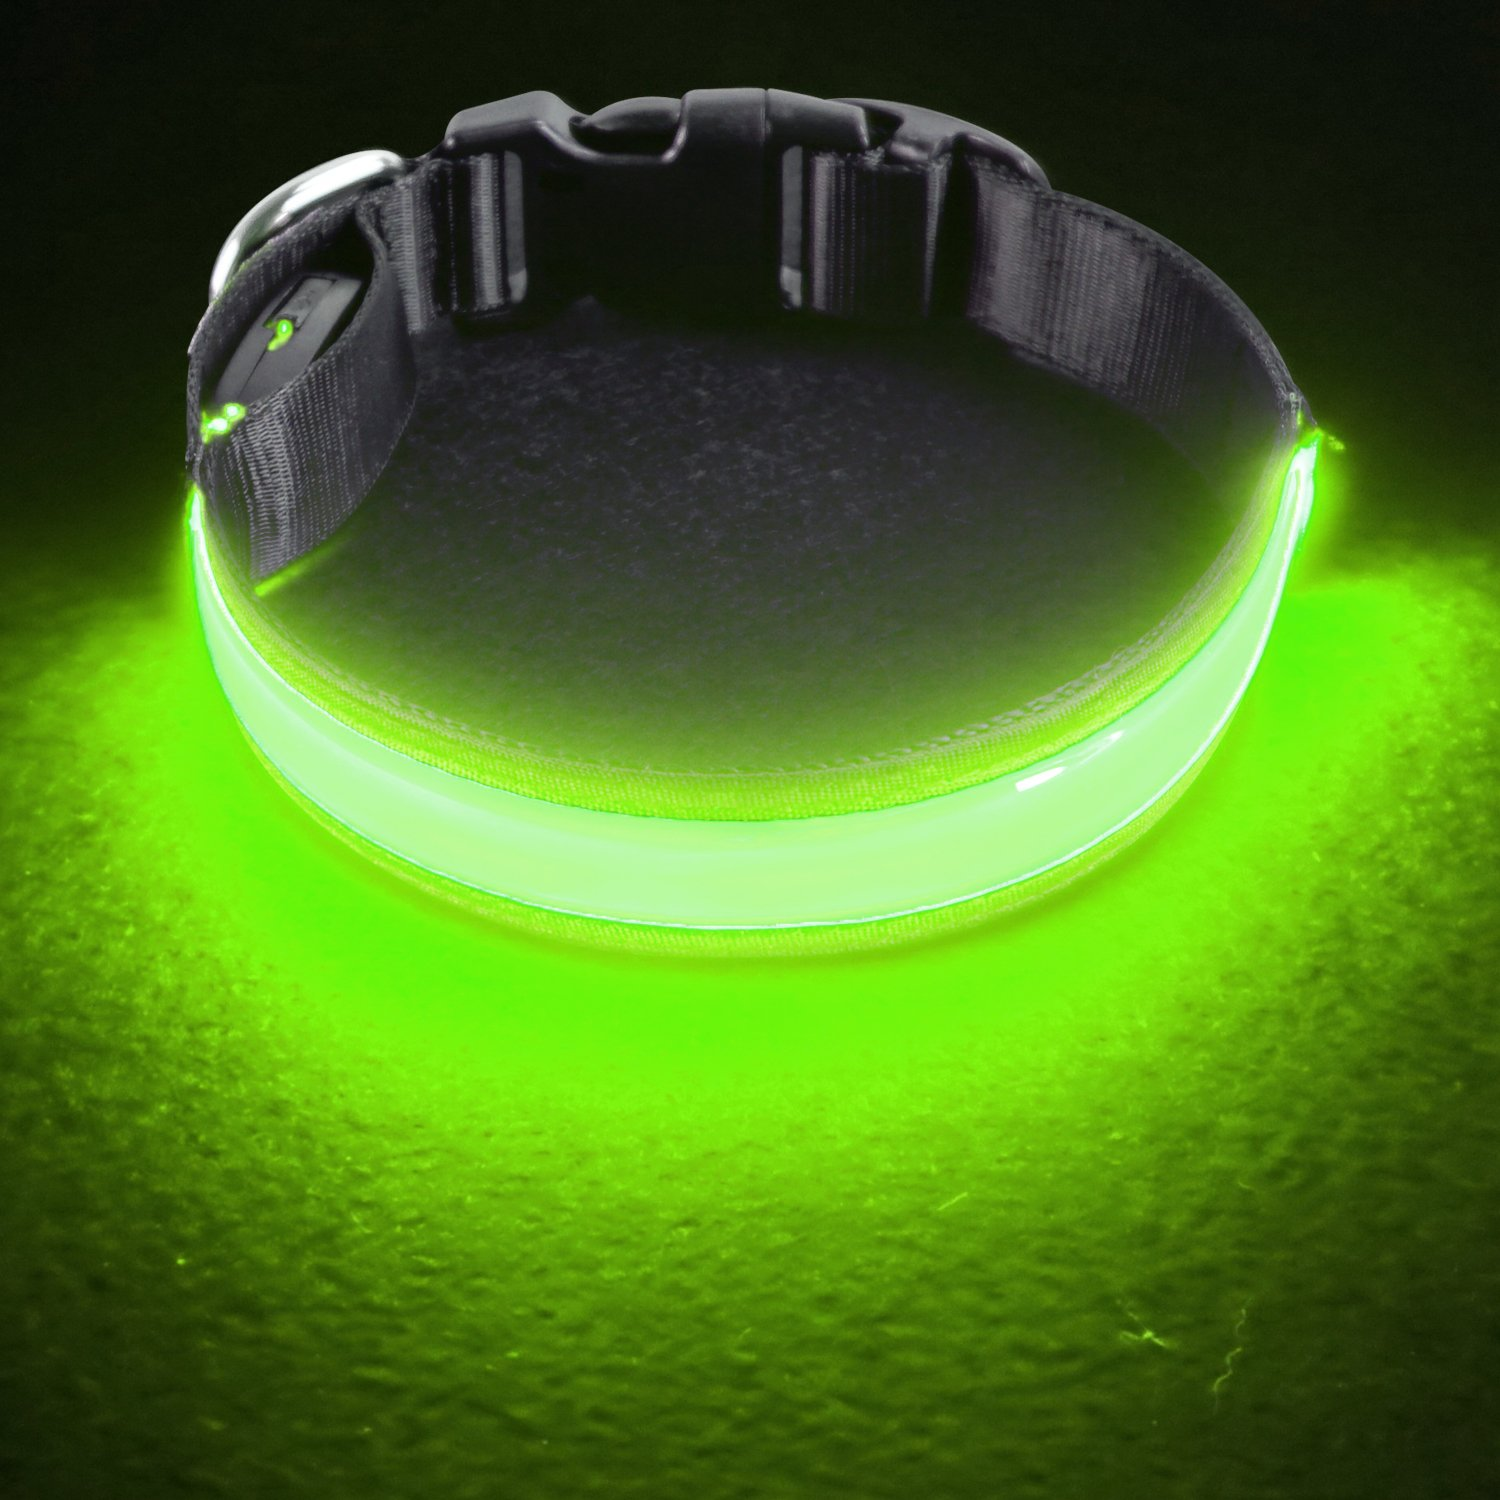 PetIsay Dog Collar Light - USB Rechargeable with Water Resistant 3 Sizes - Fashion Light up Collar Makes Your Dog Visible, Safe & Seen - Neon Green, Medium(17-20.9/43-53cm